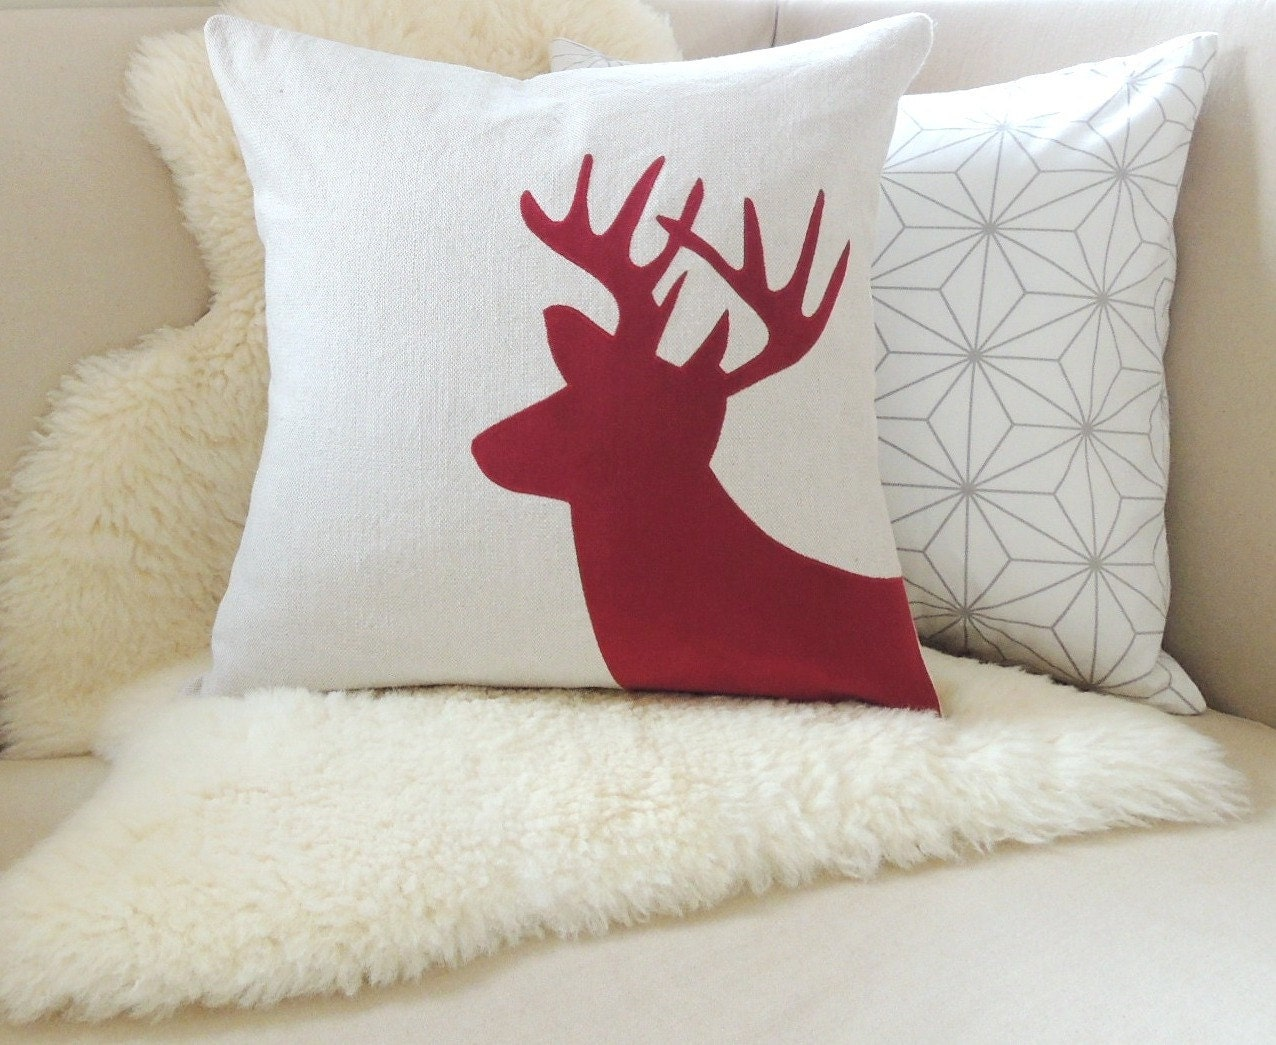 Holiday Deer Pillow Cover Rustic Modern by VixenGoods on Etsy